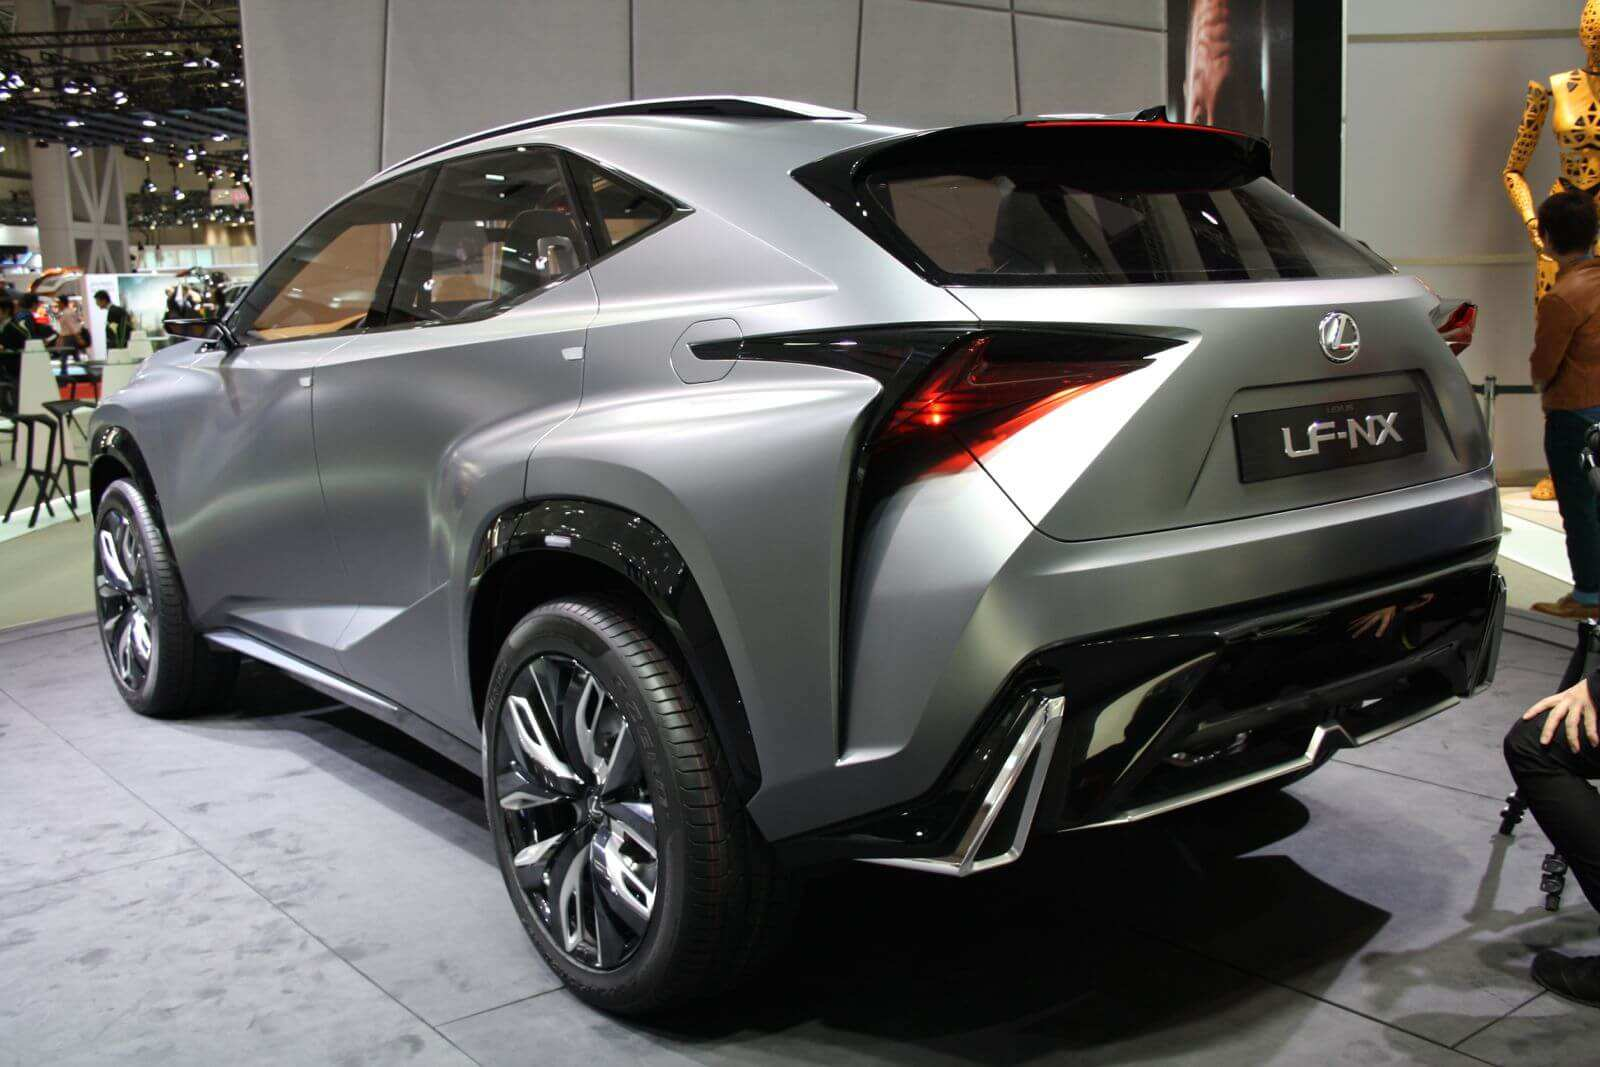 58 All New The New Toyota 2019 Models Review Specs And Release Date Overview with The New Toyota 2019 Models Review Specs And Release Date